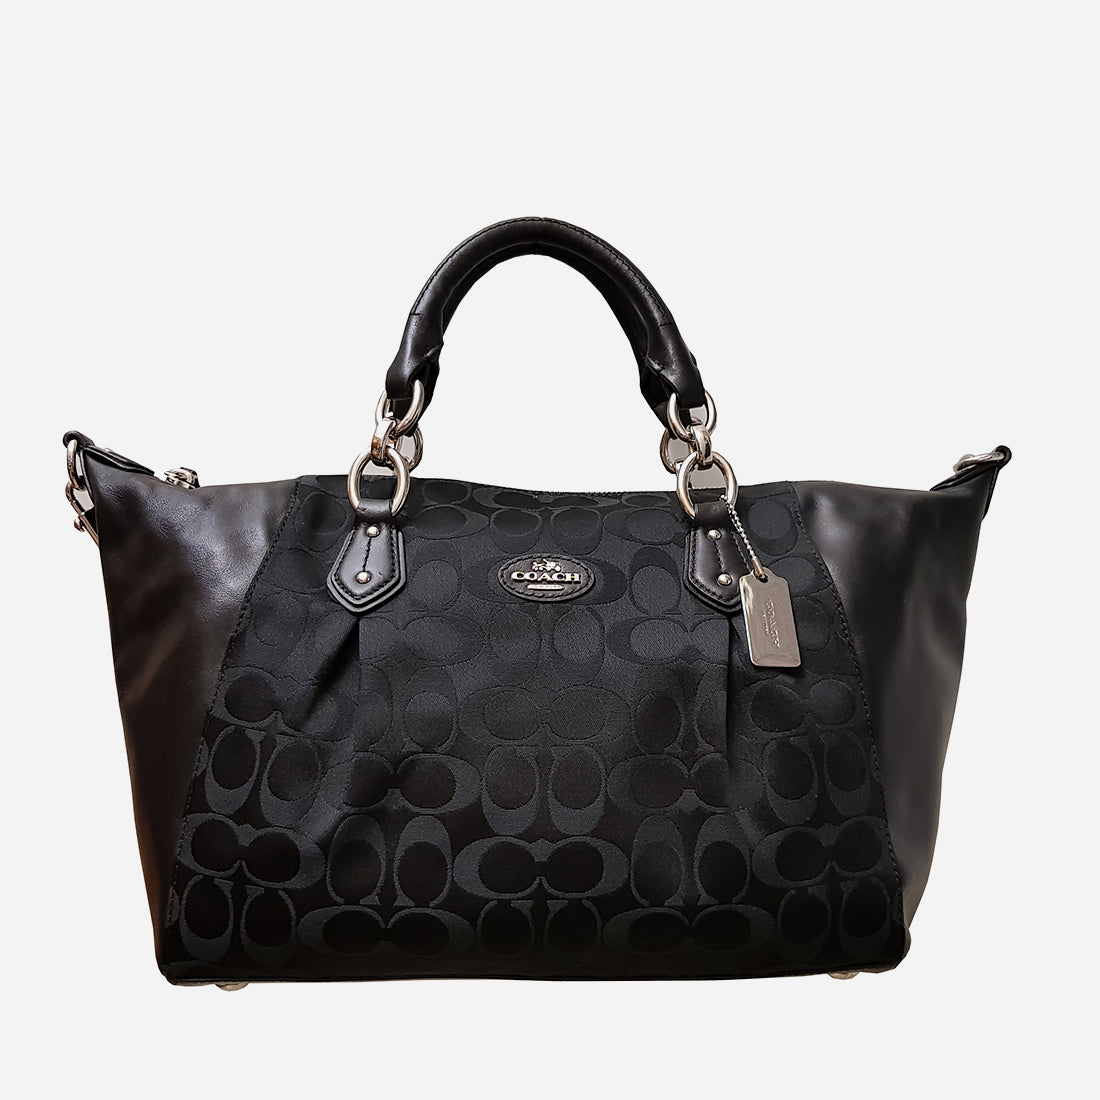 COACH BLACK SATCHEL HANDBAG